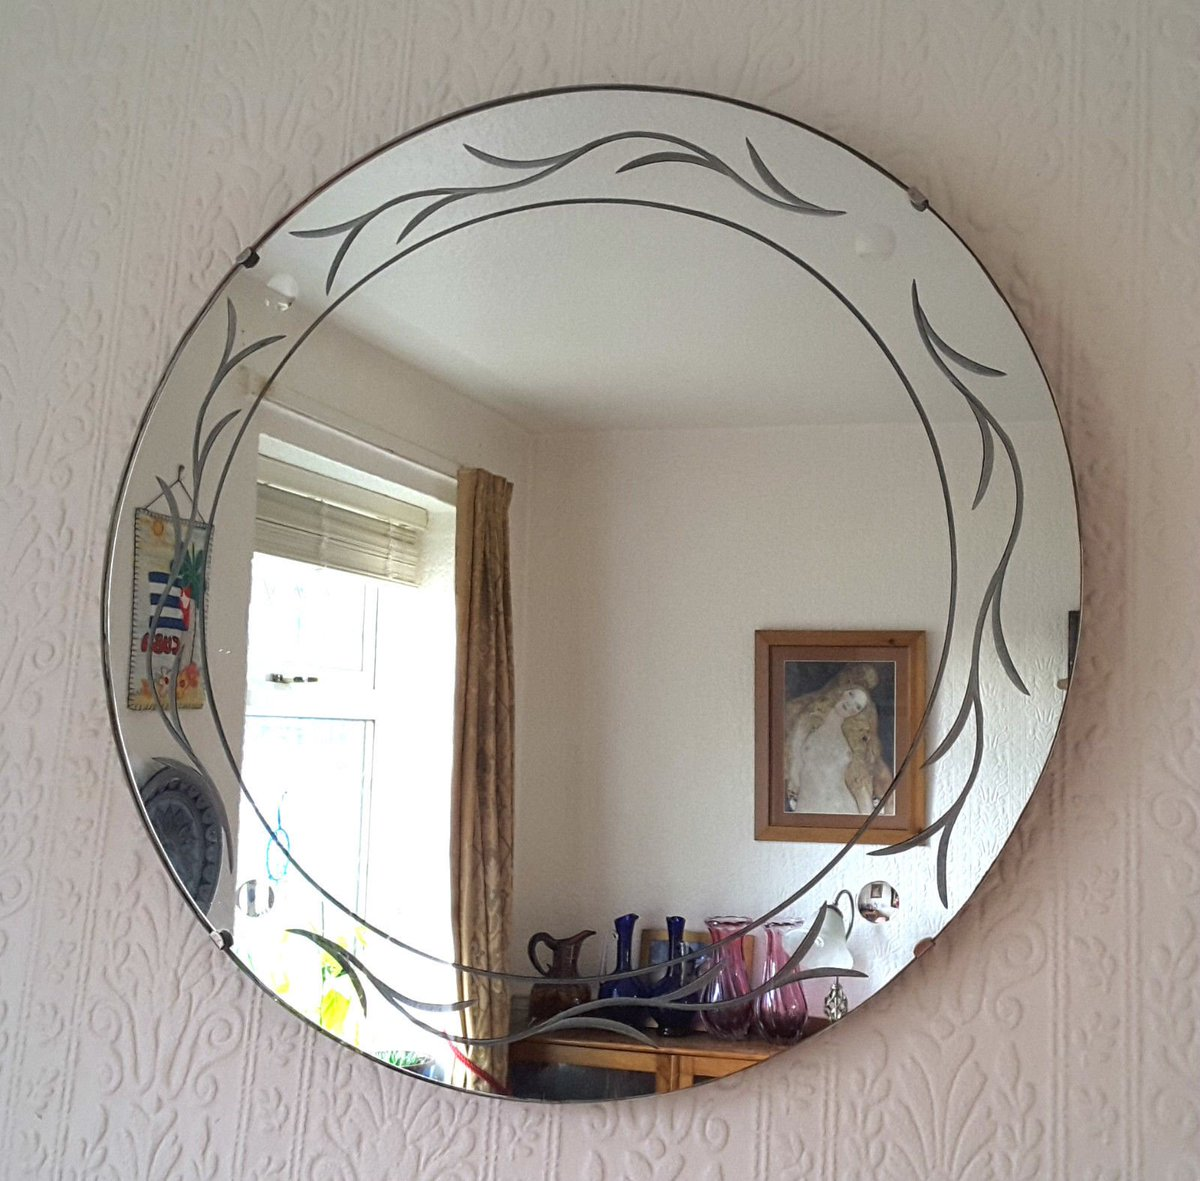 Pleased to announce that this beautiful #VINTAGE~#RETRO~#MIDCENTURY  #MODERN #MCM #ARTGLASS~#MIRROR~is now eligible to be shipped to #USA - further to lots of interest - please see my #eBay for more details! #Xmas2017 #InteriorDesign #FengShui #London xxx  https://www. ebay.co.uk/itm/2532647897 50 &nbsp; … <br>http://pic.twitter.com/5hW8P38YnJ